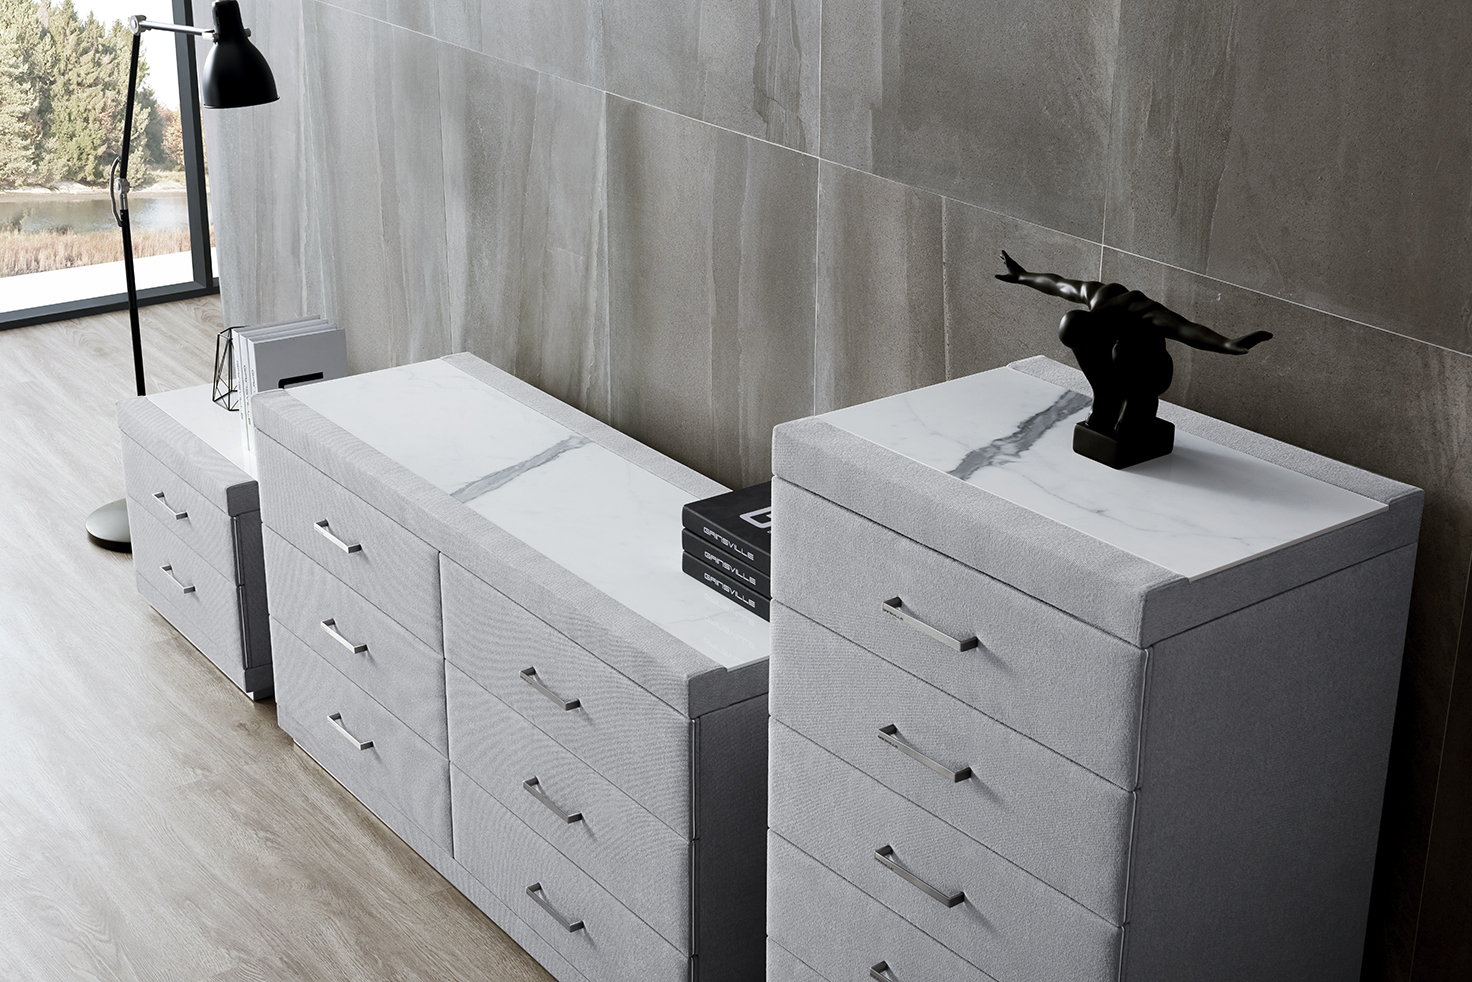 G5 Upholstered Bedroom Cabinets with Marble Ceramic Top